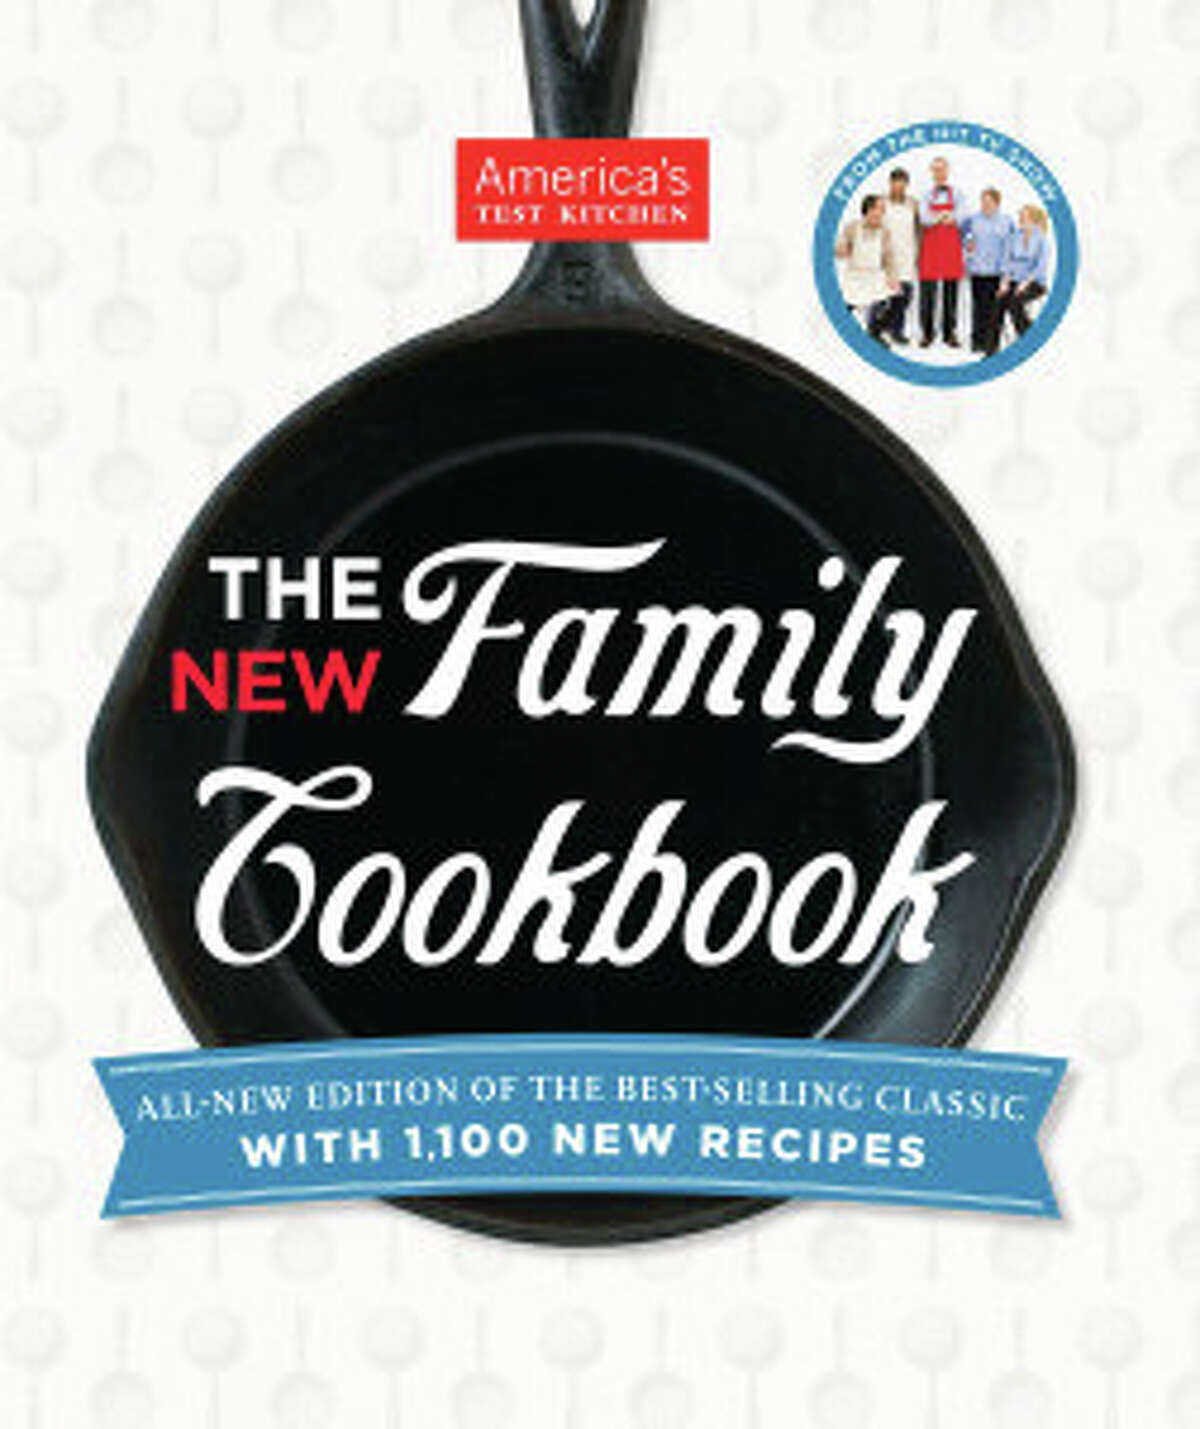 """""""The New Family Cookbook"""" by America's Test Kitchen features more than 1,000 new recipes. (Courtesy America's Test Kitchen)"""